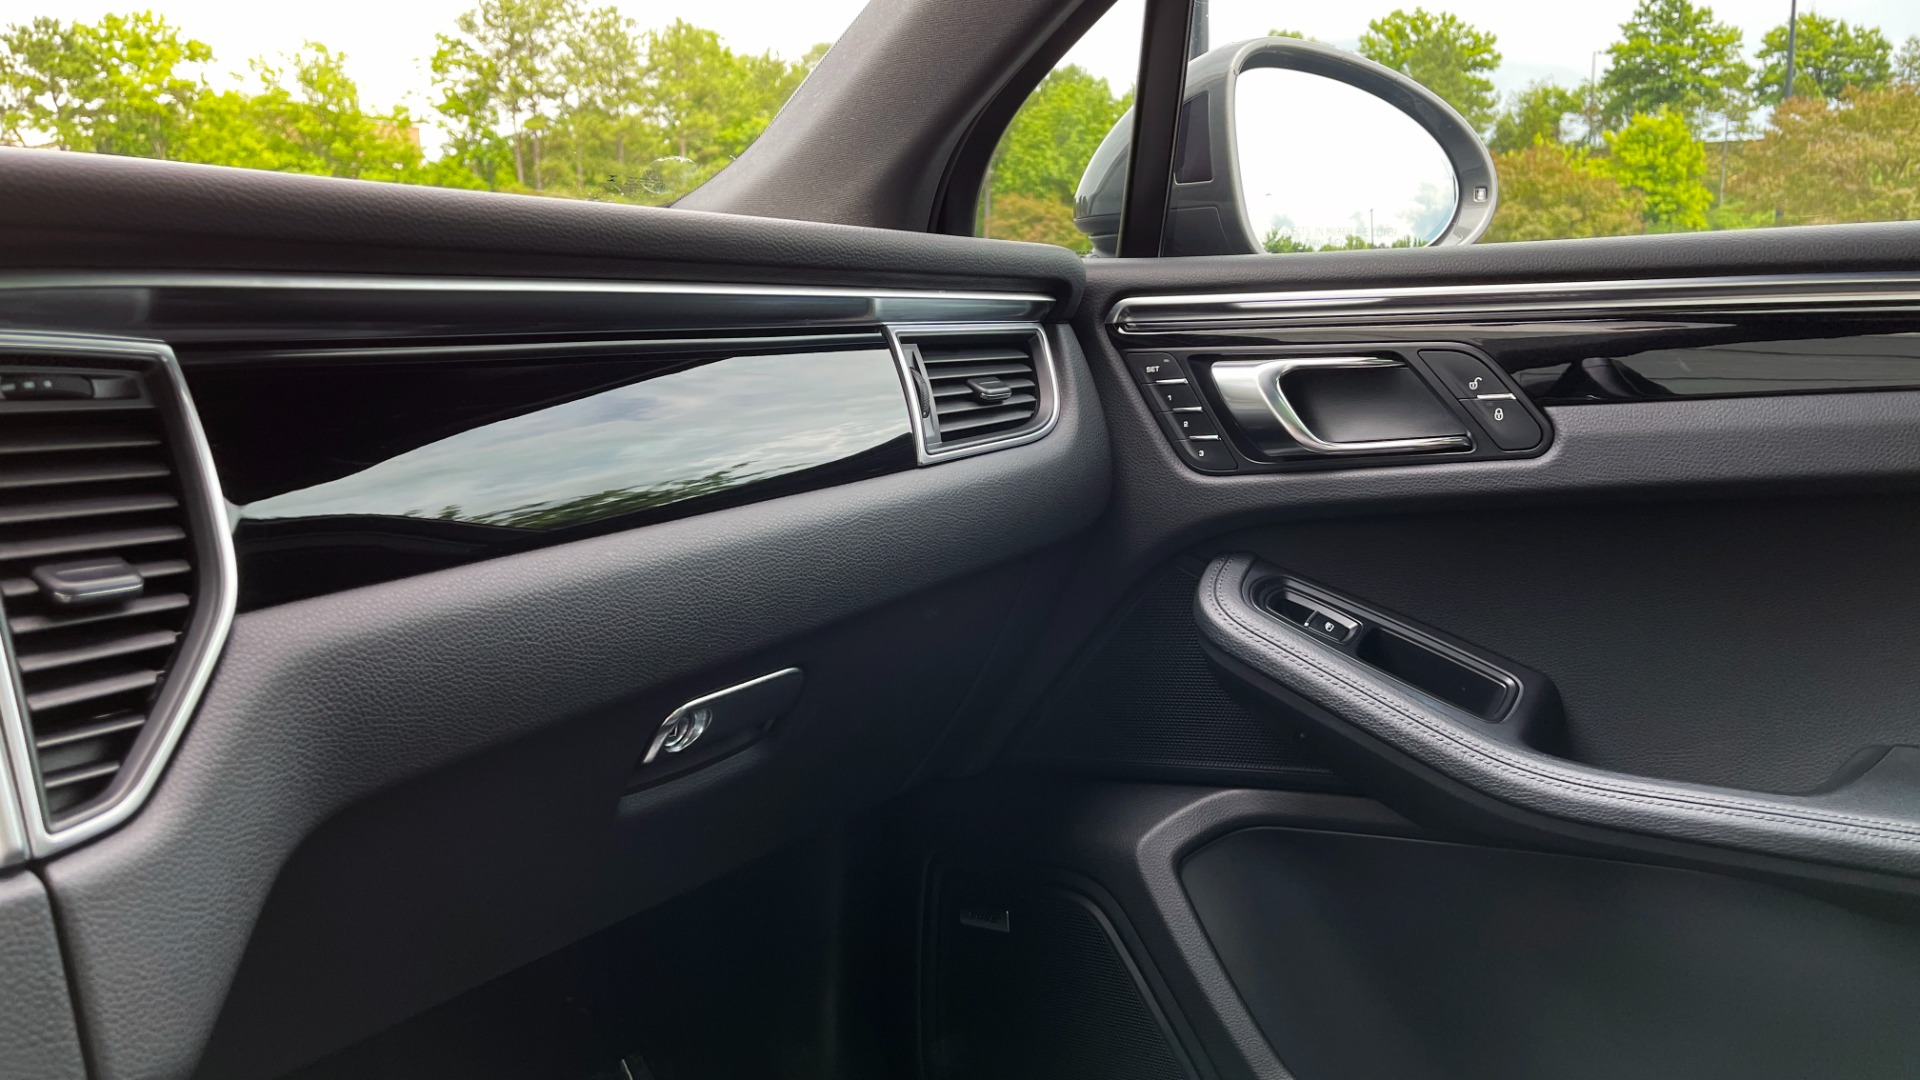 Used 2016 Porsche MACAN S PREMIUM PLUS / AWD / NAV / BOSE / SUNROOF / LCA / PARK ASST / INFOTAINMEN for sale $45,256 at Formula Imports in Charlotte NC 28227 55